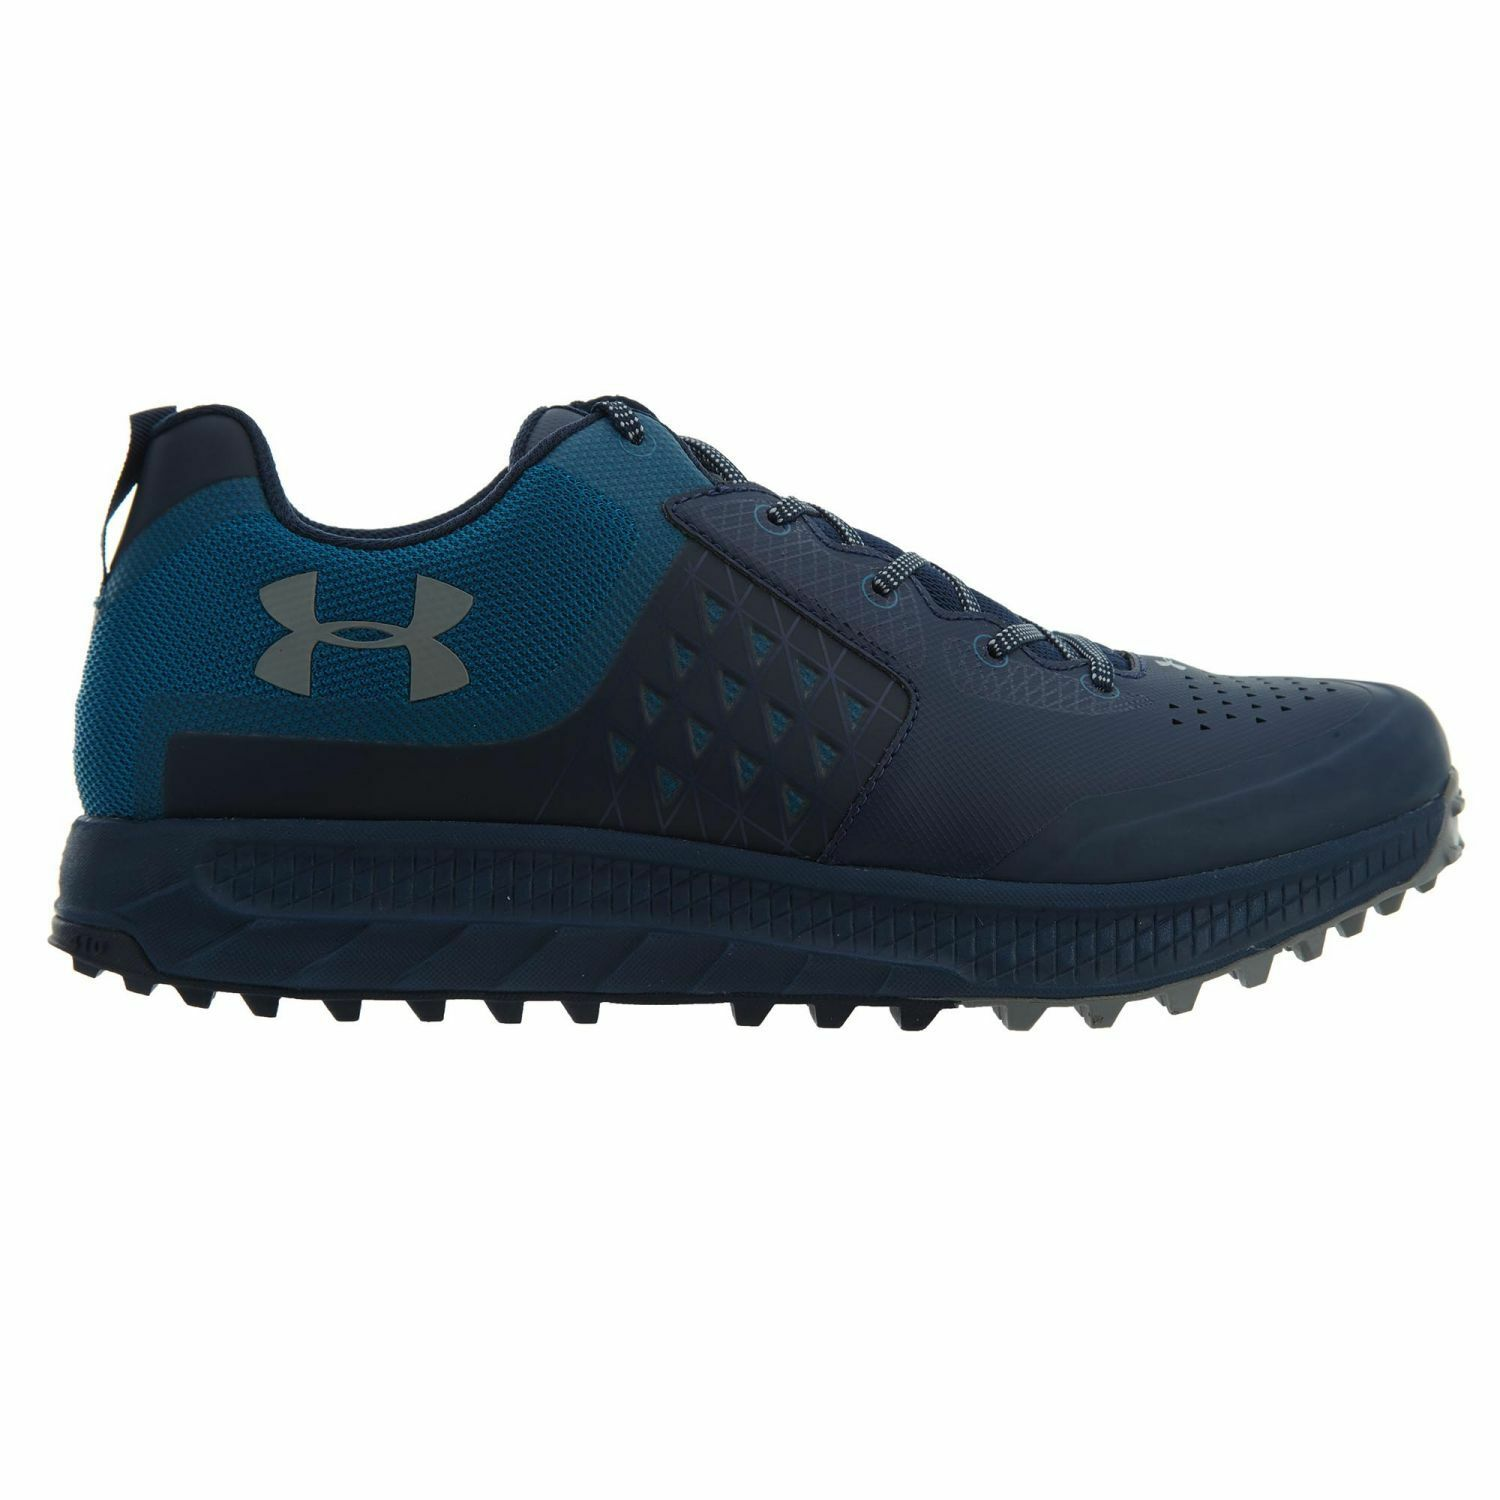 Under Armour Horizon Str Mens 1288967-408 Blue Steel Trail Running Shoes Sz 8